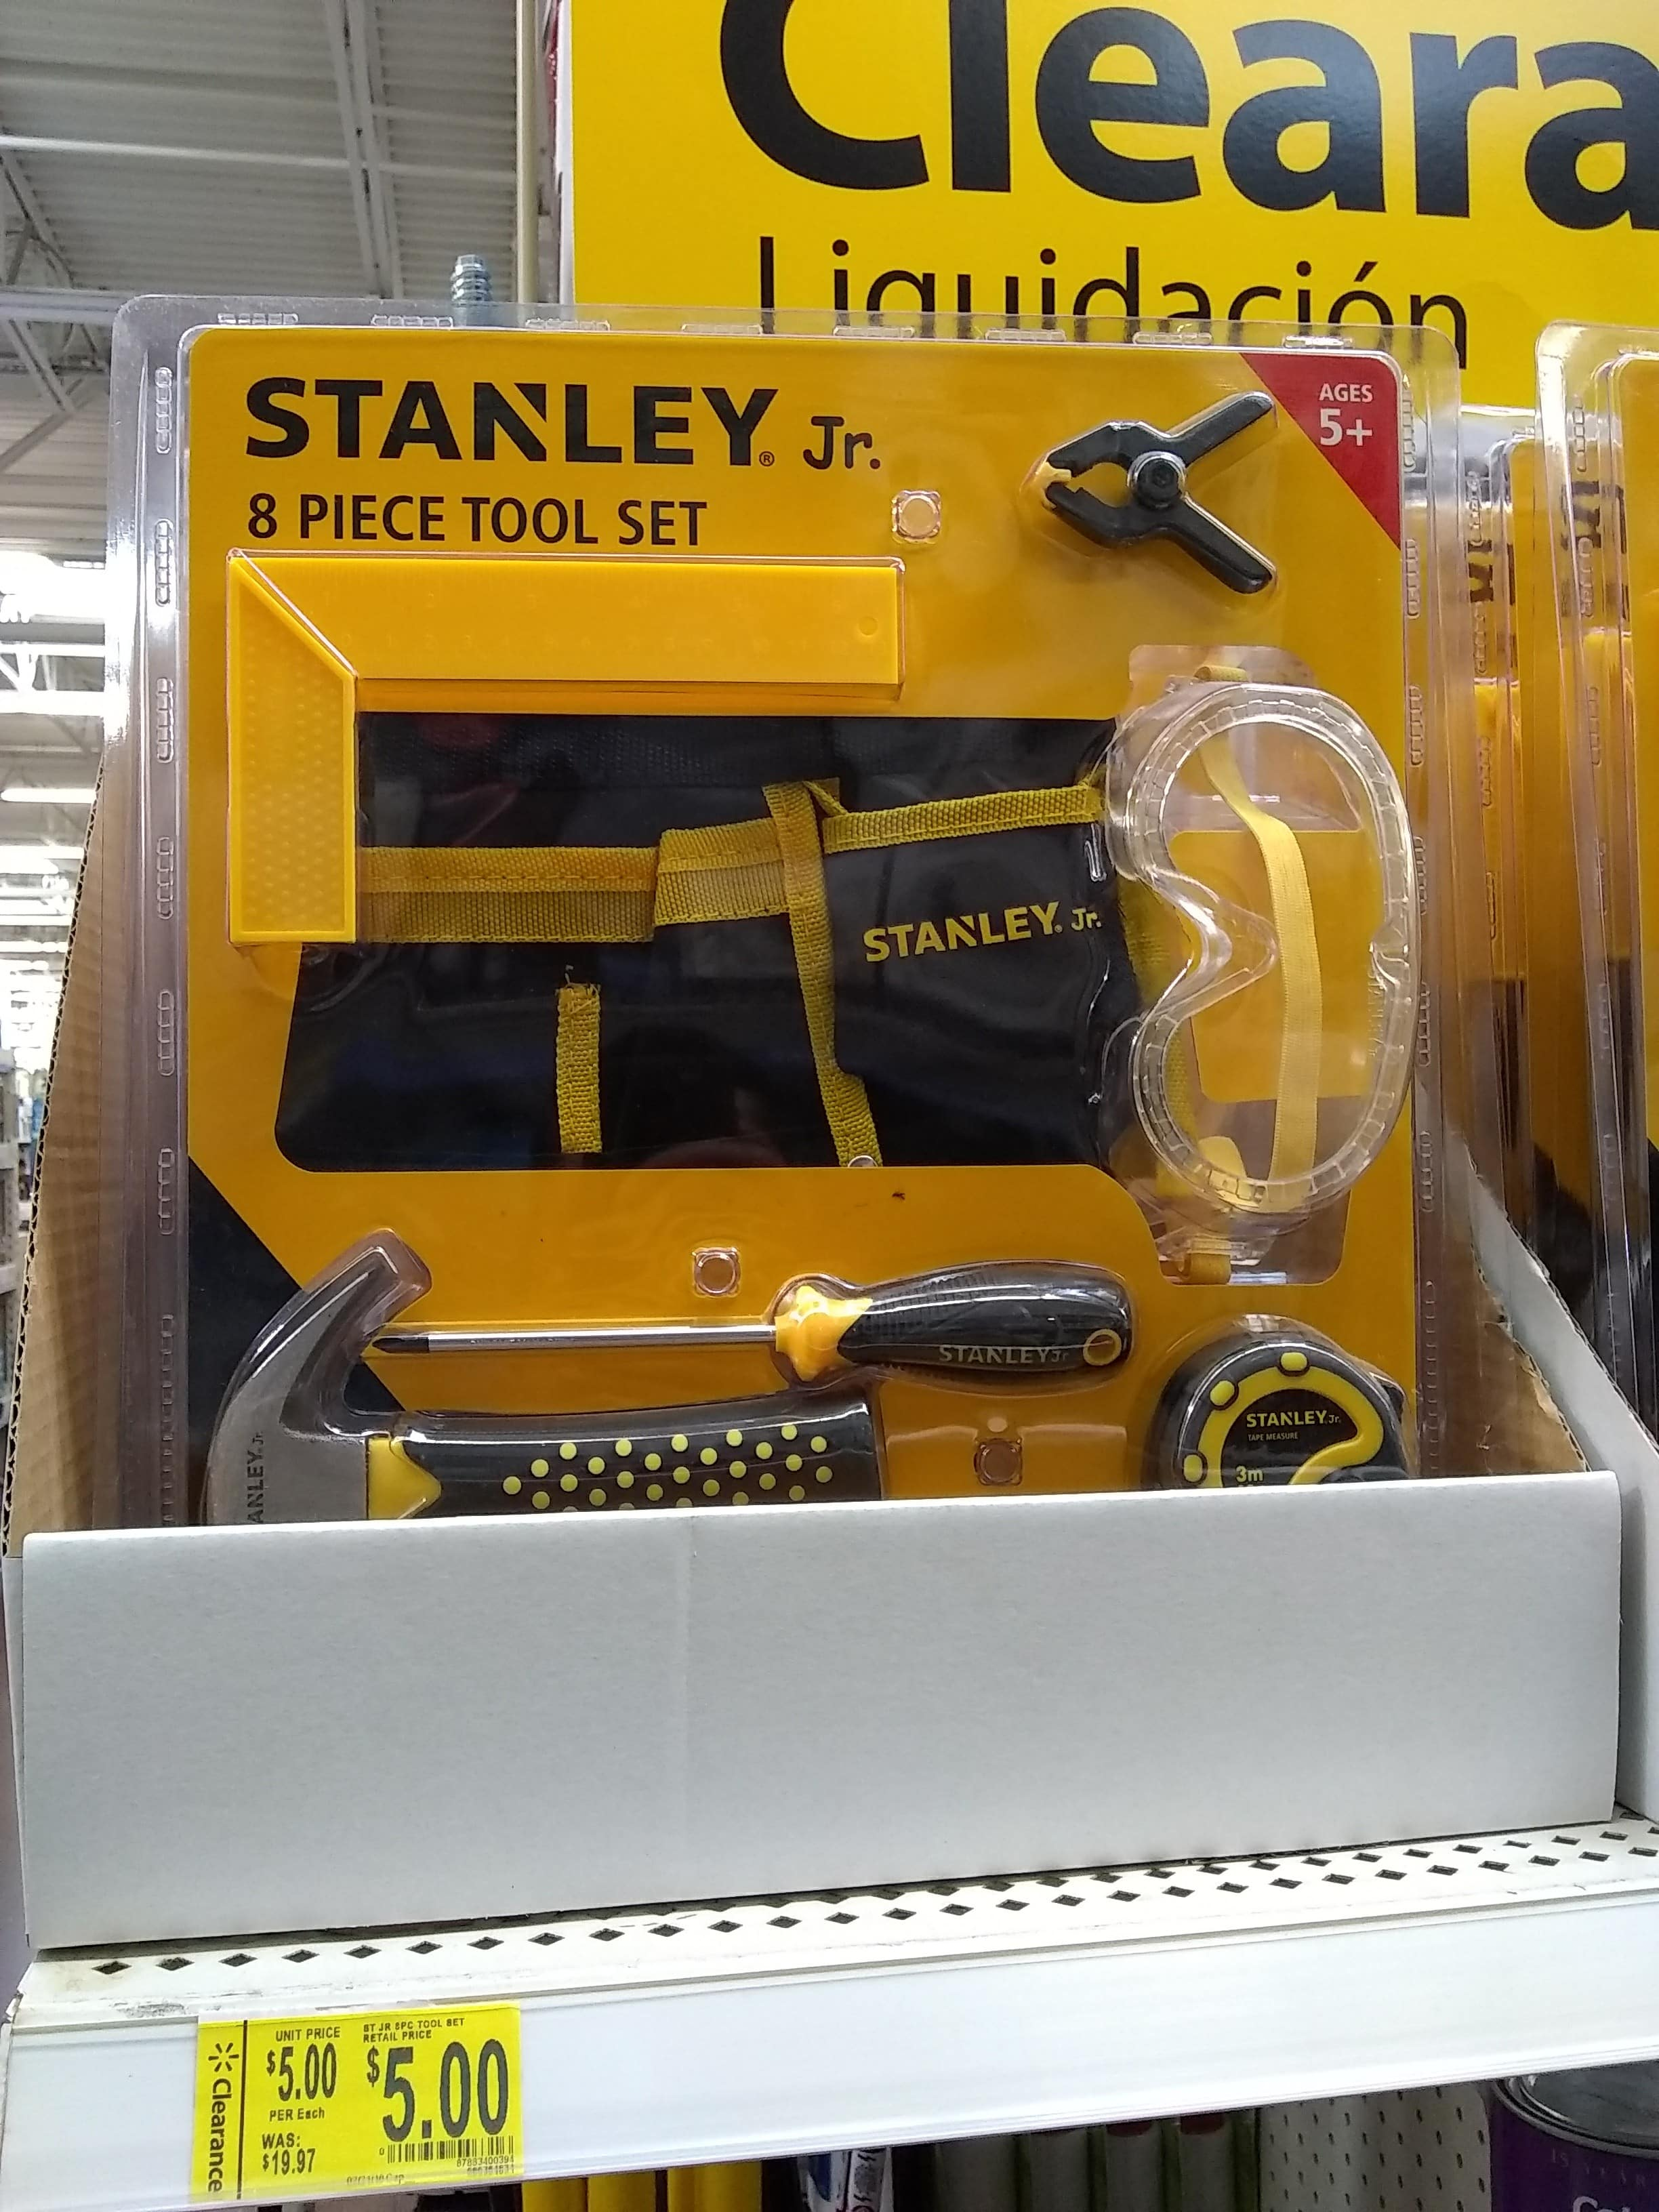 Stanley Jr. 8 Piece Tool Set - $5.00 - YMMV